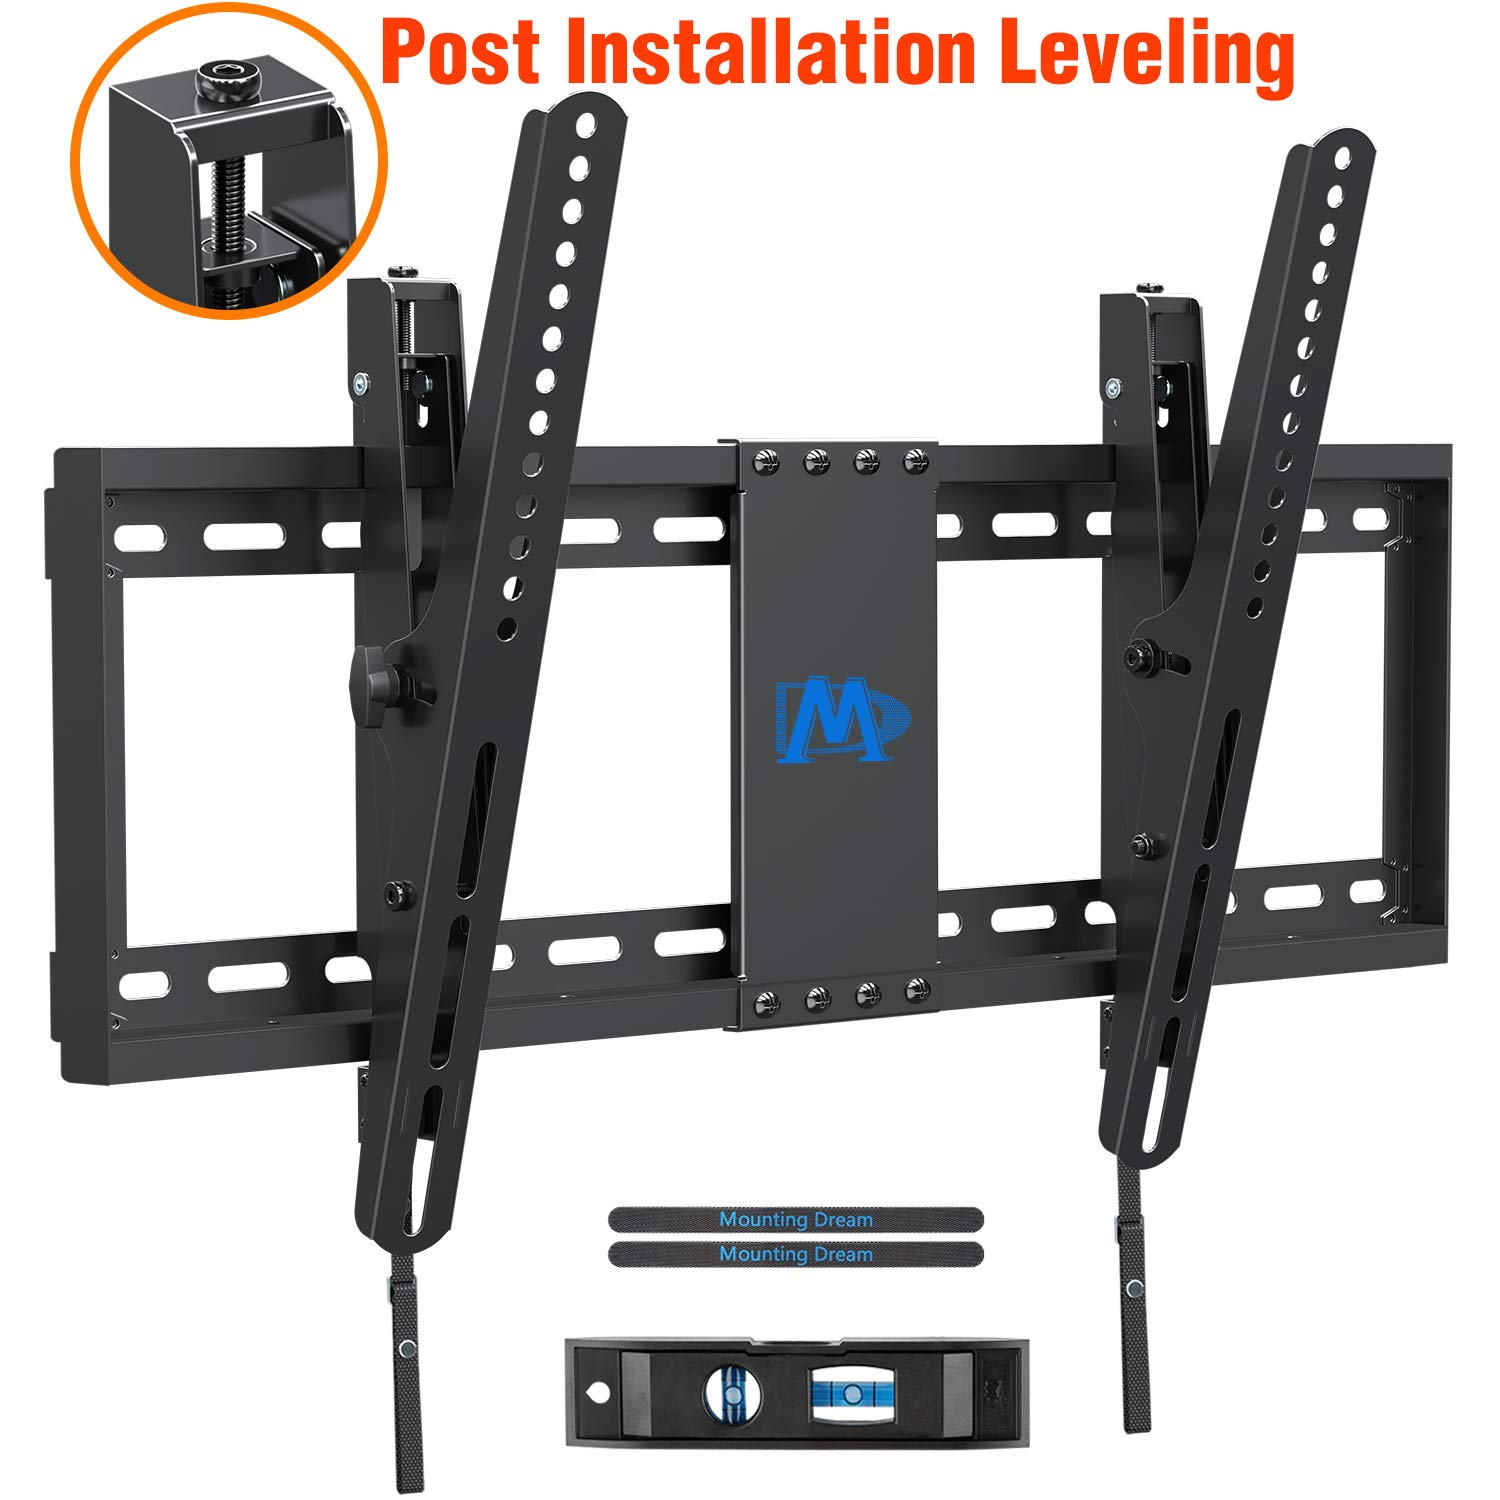 Mounting Dream TV Wall Mount with Post Installation Leveling for Most 37-70'' Flat-Panel TVs, Tilting TV Mount up to 132lbs, VESA 600x400mm, Low Profile TV Wall Mount Bracket Fits 16''- 24'' Wood Studs